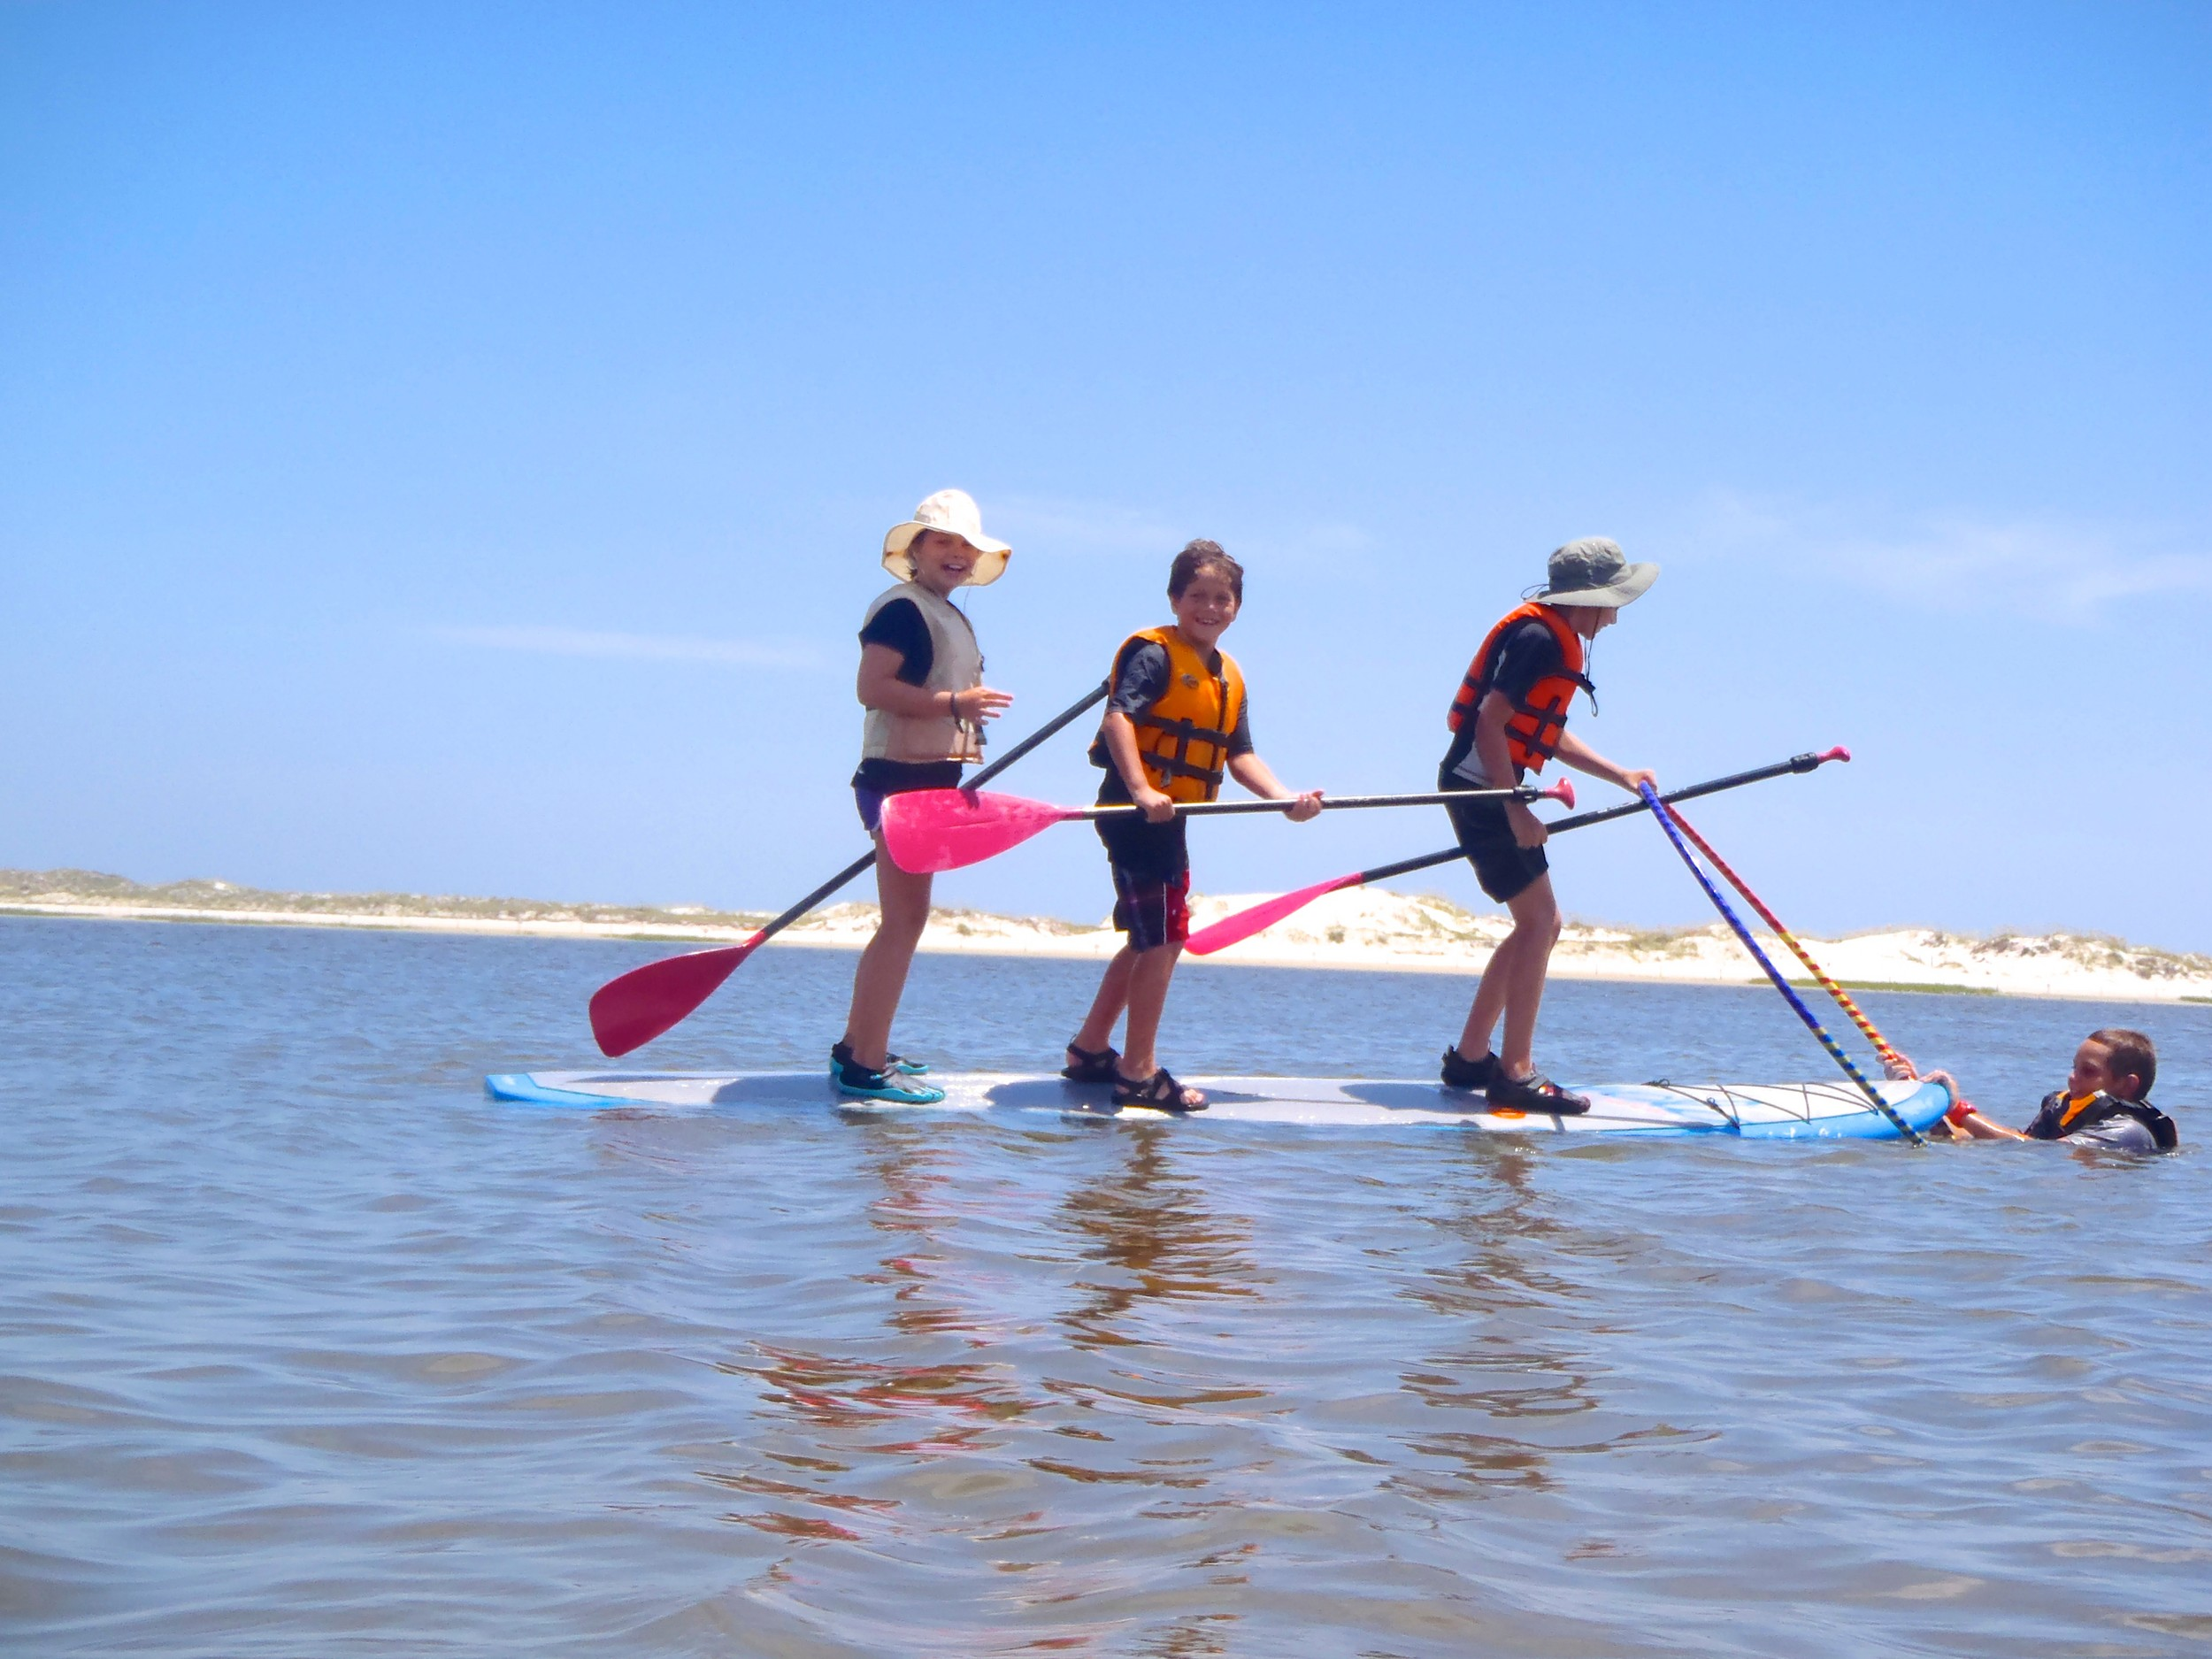 Kayaks, standup paddleboards and bicycles are all part of the fun and learning at some of Northeast Florida's most beautiful and pristine ecosystems. Kayak Amelia's campers also experience journaling, crafting and hands-on activities, on Heckscher Drive on Jacksonville's Northside.